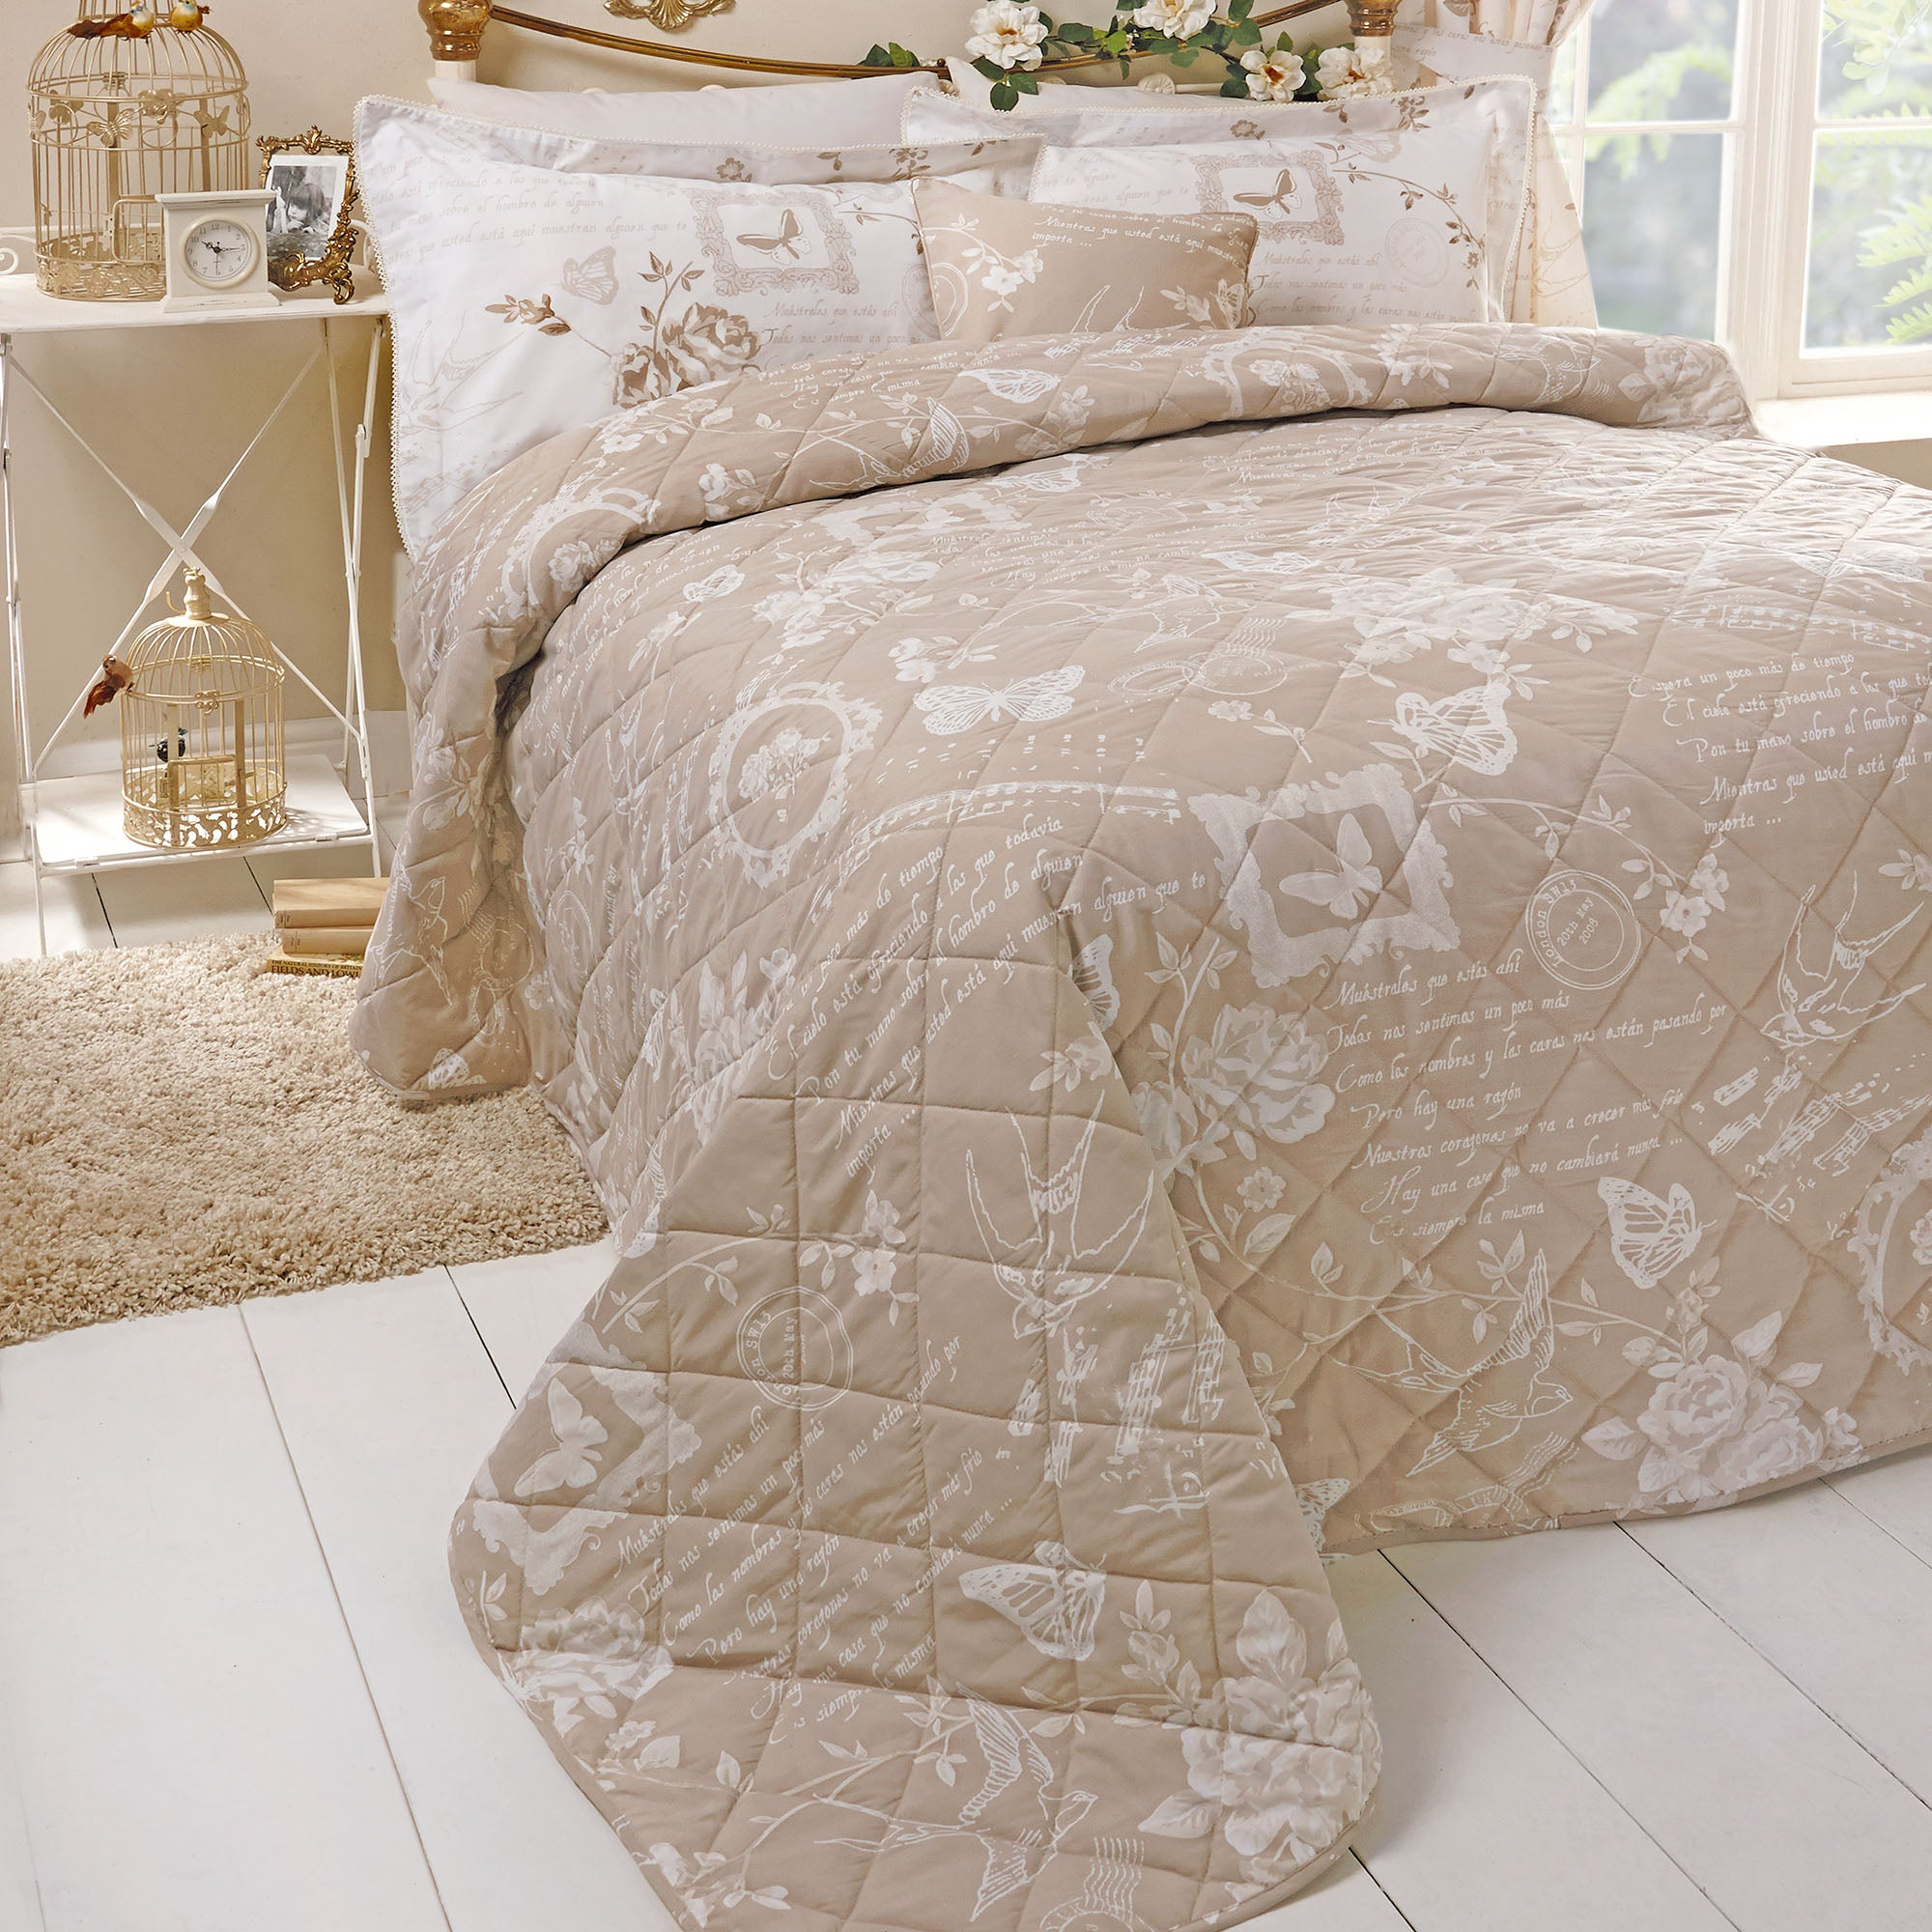 Latte Nostalgic Bluebird Collection Bedspread